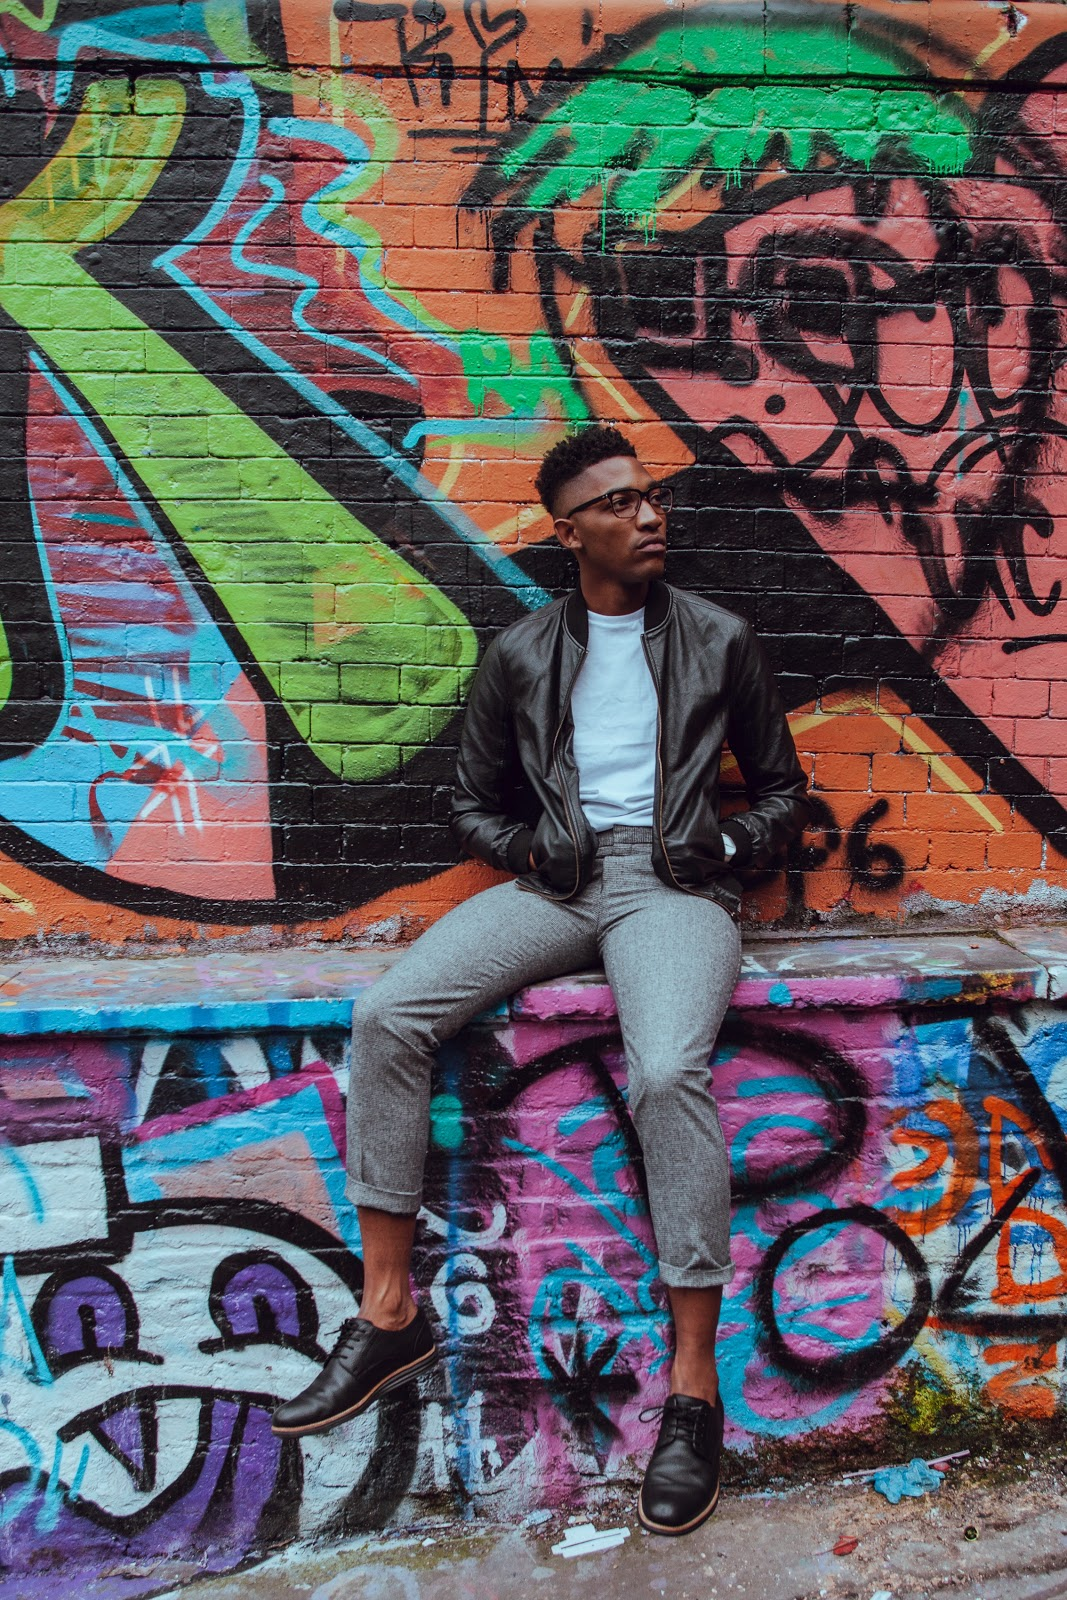 A young man casually sits on a ledge with graffiti behind him. He is wearing a leather bomber jacket, white shirt, grey pants, and black oxford shoes.